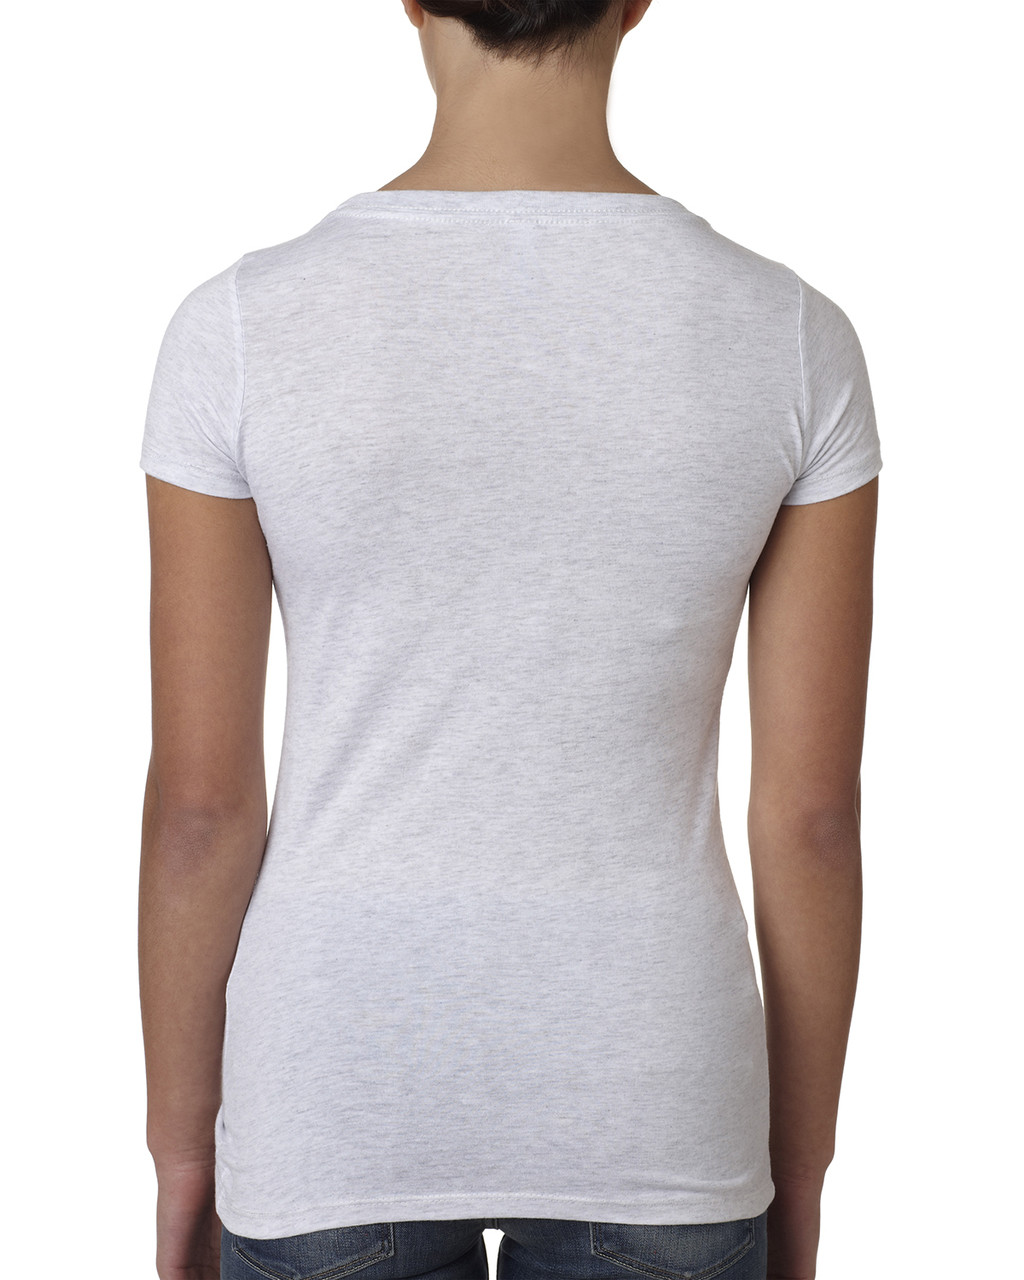 Heather White, back 6730 Next Level Ladies' Tri-Blend Scoop Tee | Blankclothing.ca